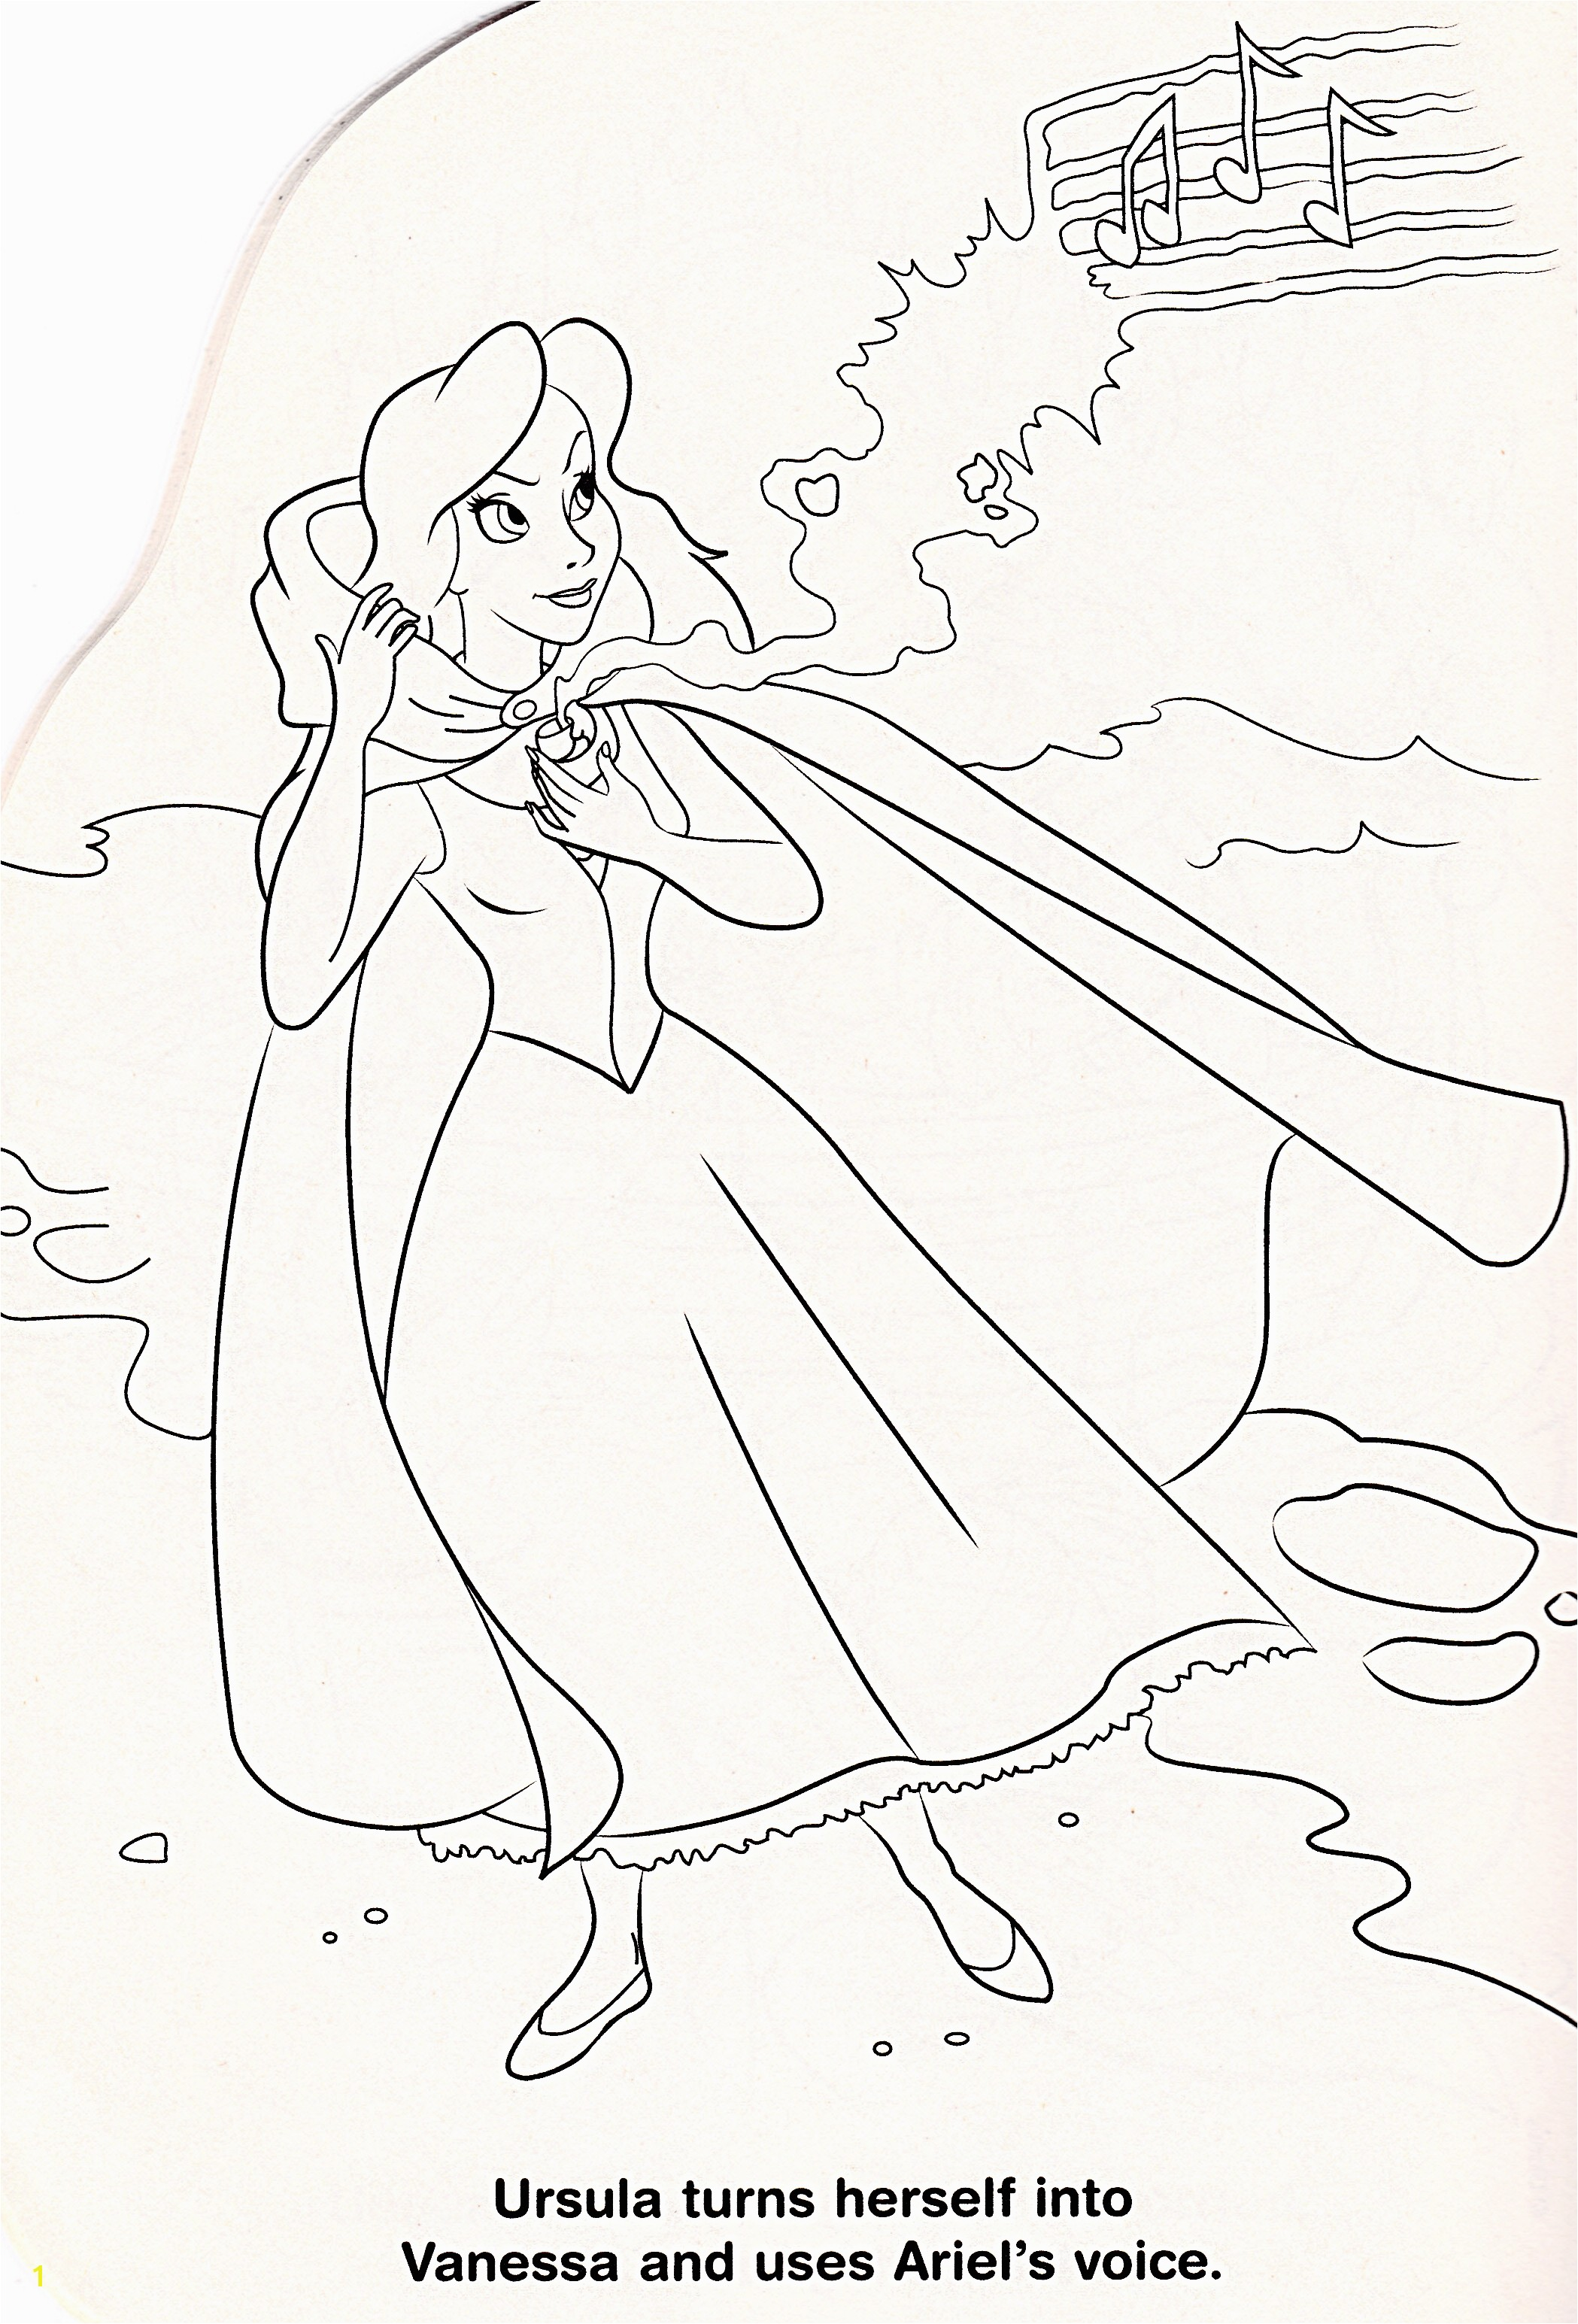 Karakter Walt Disney images Walt Disney Coloring Pages Vanessa HD wallpaper and background photos